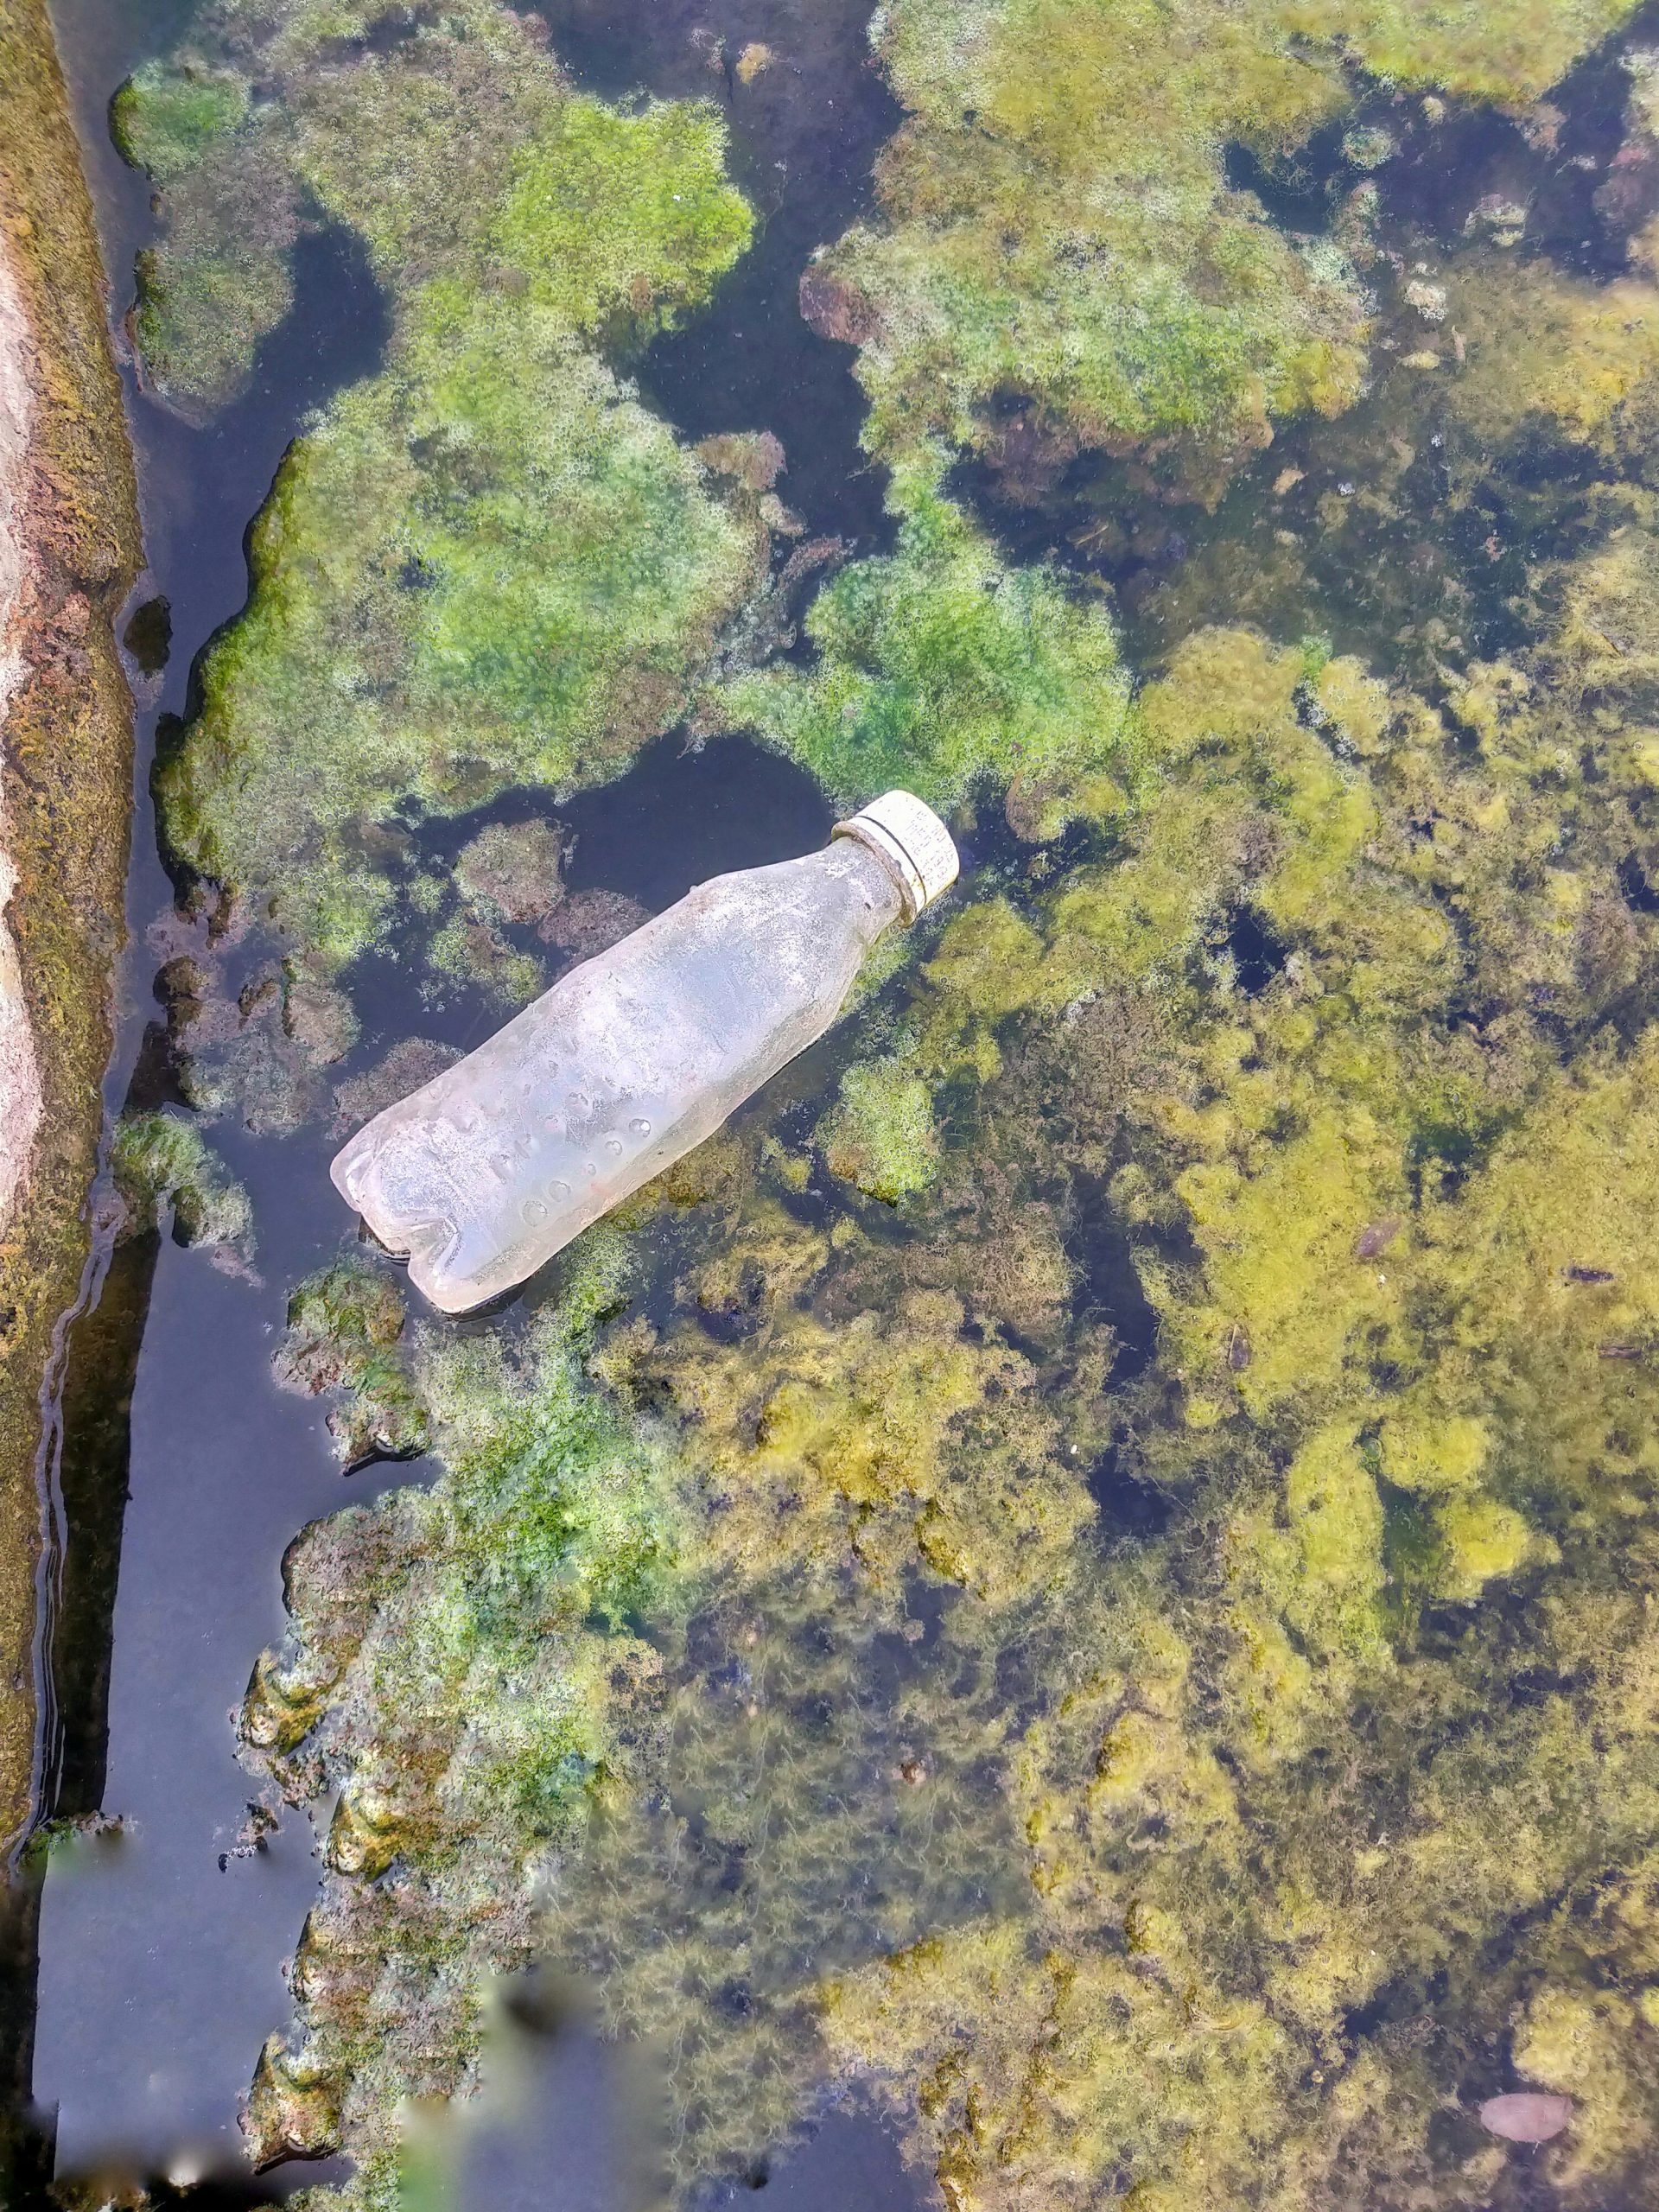 Waste in water